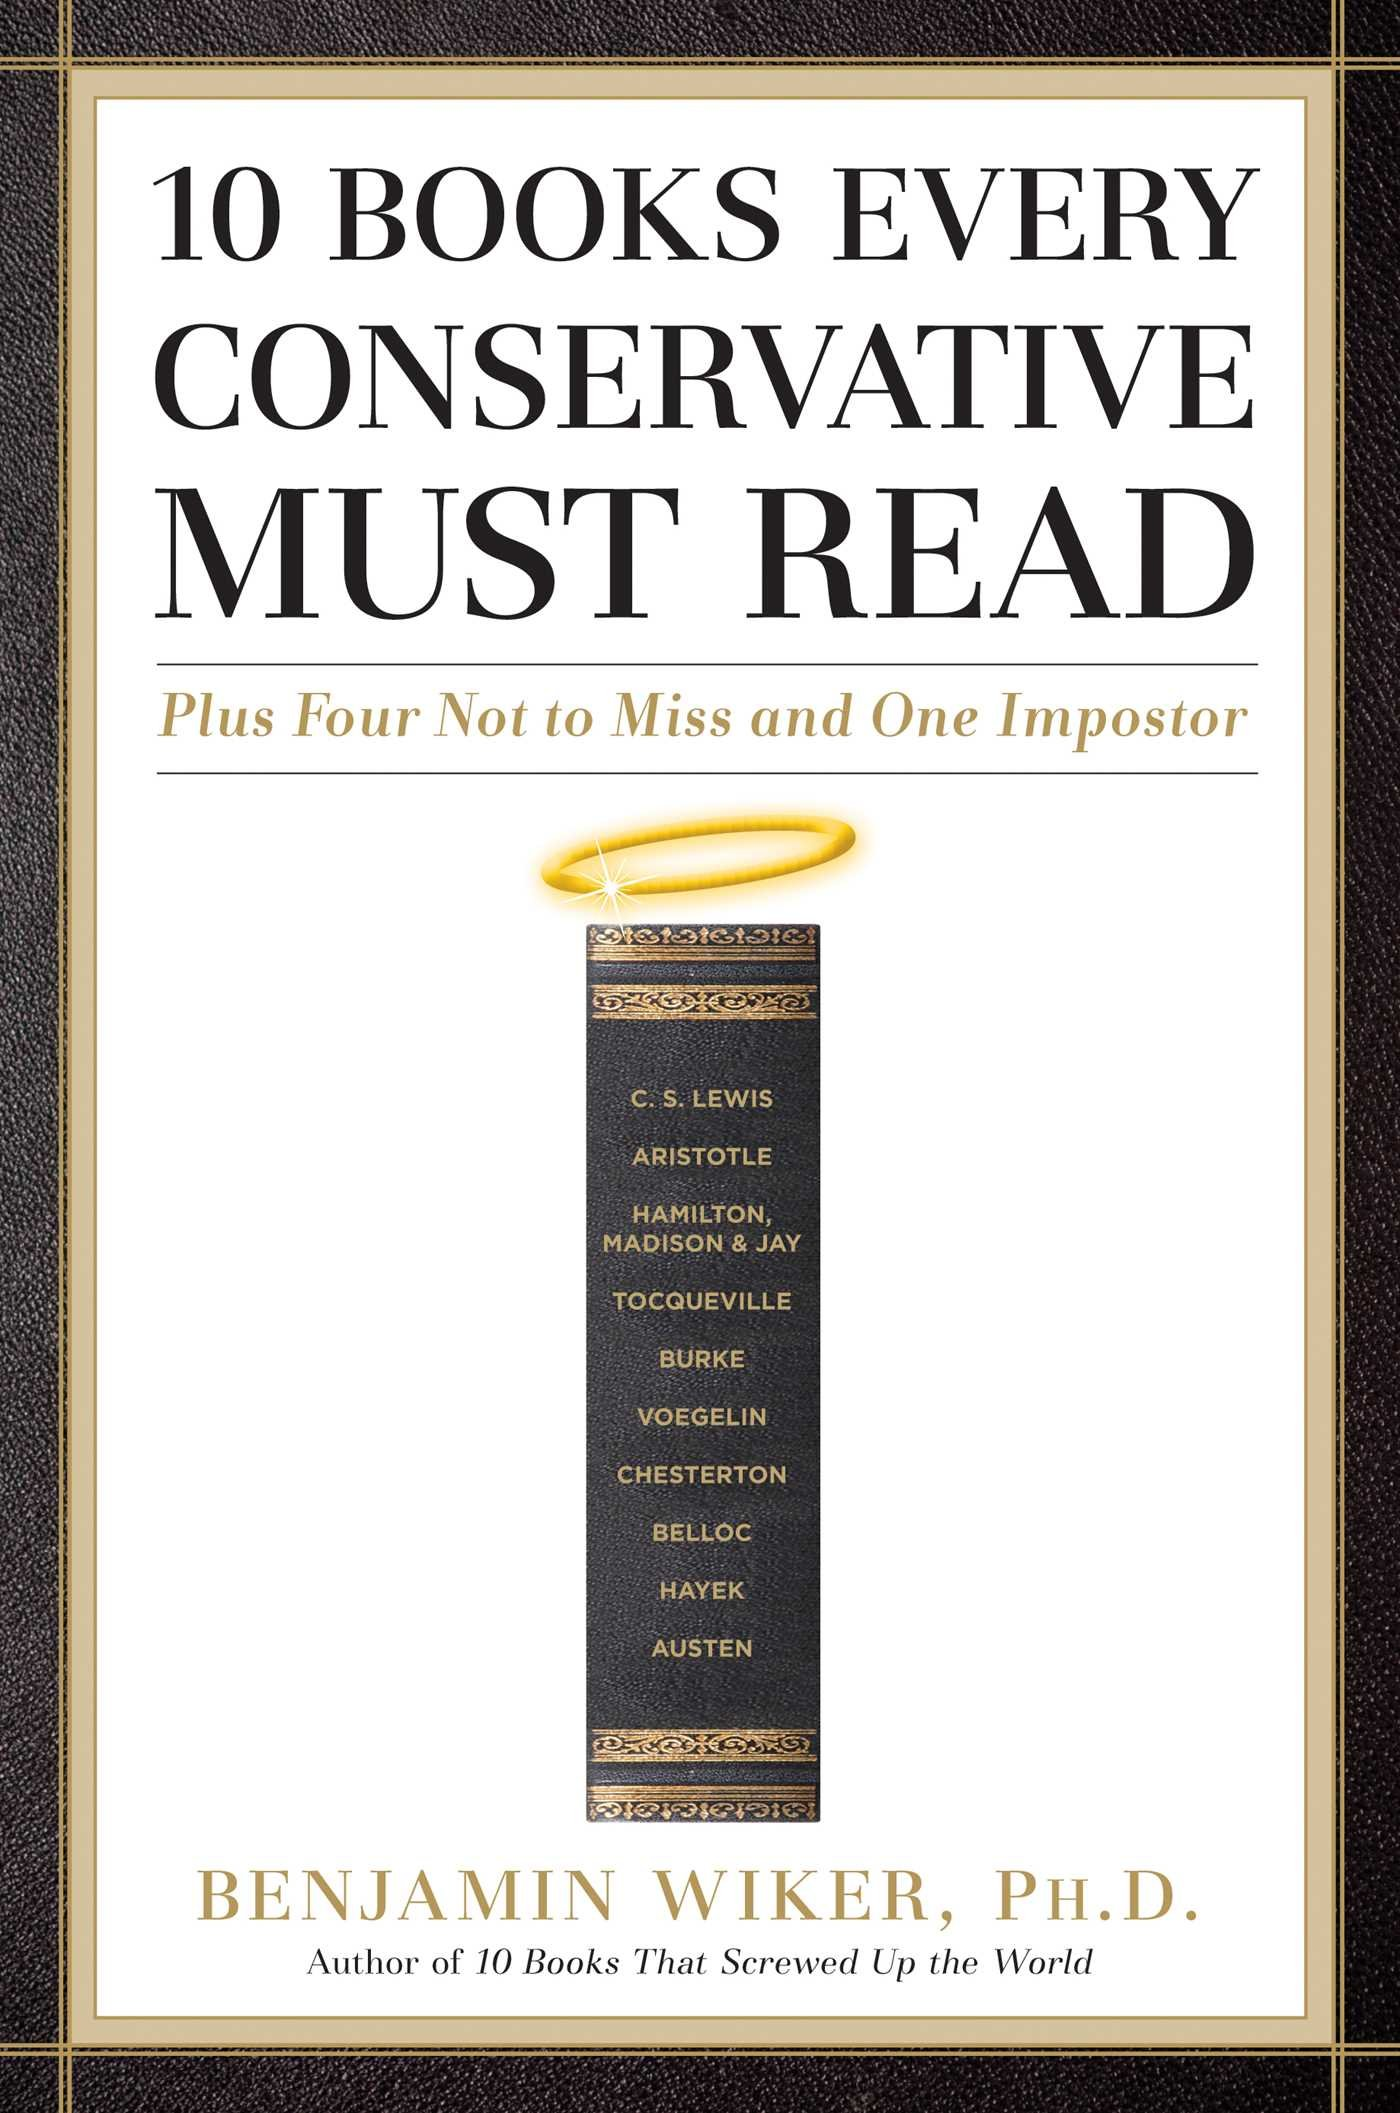 10 Books Every Conservative Must Read: Plus Four Not to Miss